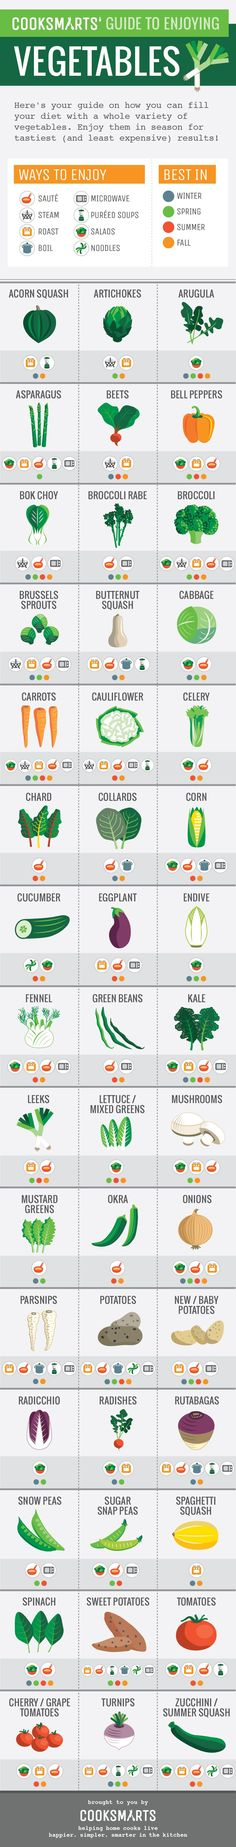 100+ Ways to Enjoy Your Vegetables via Cook Smarts